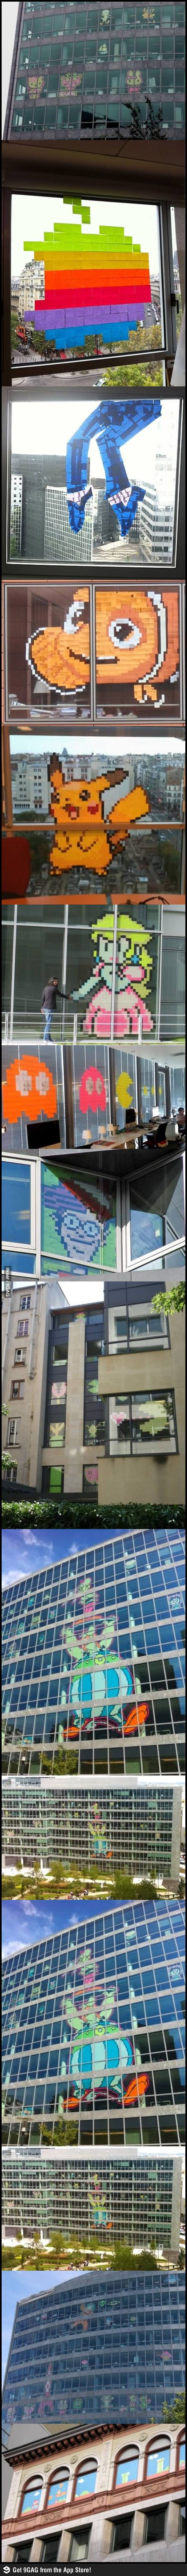 post-it wars, art, window, competition, long, compilation